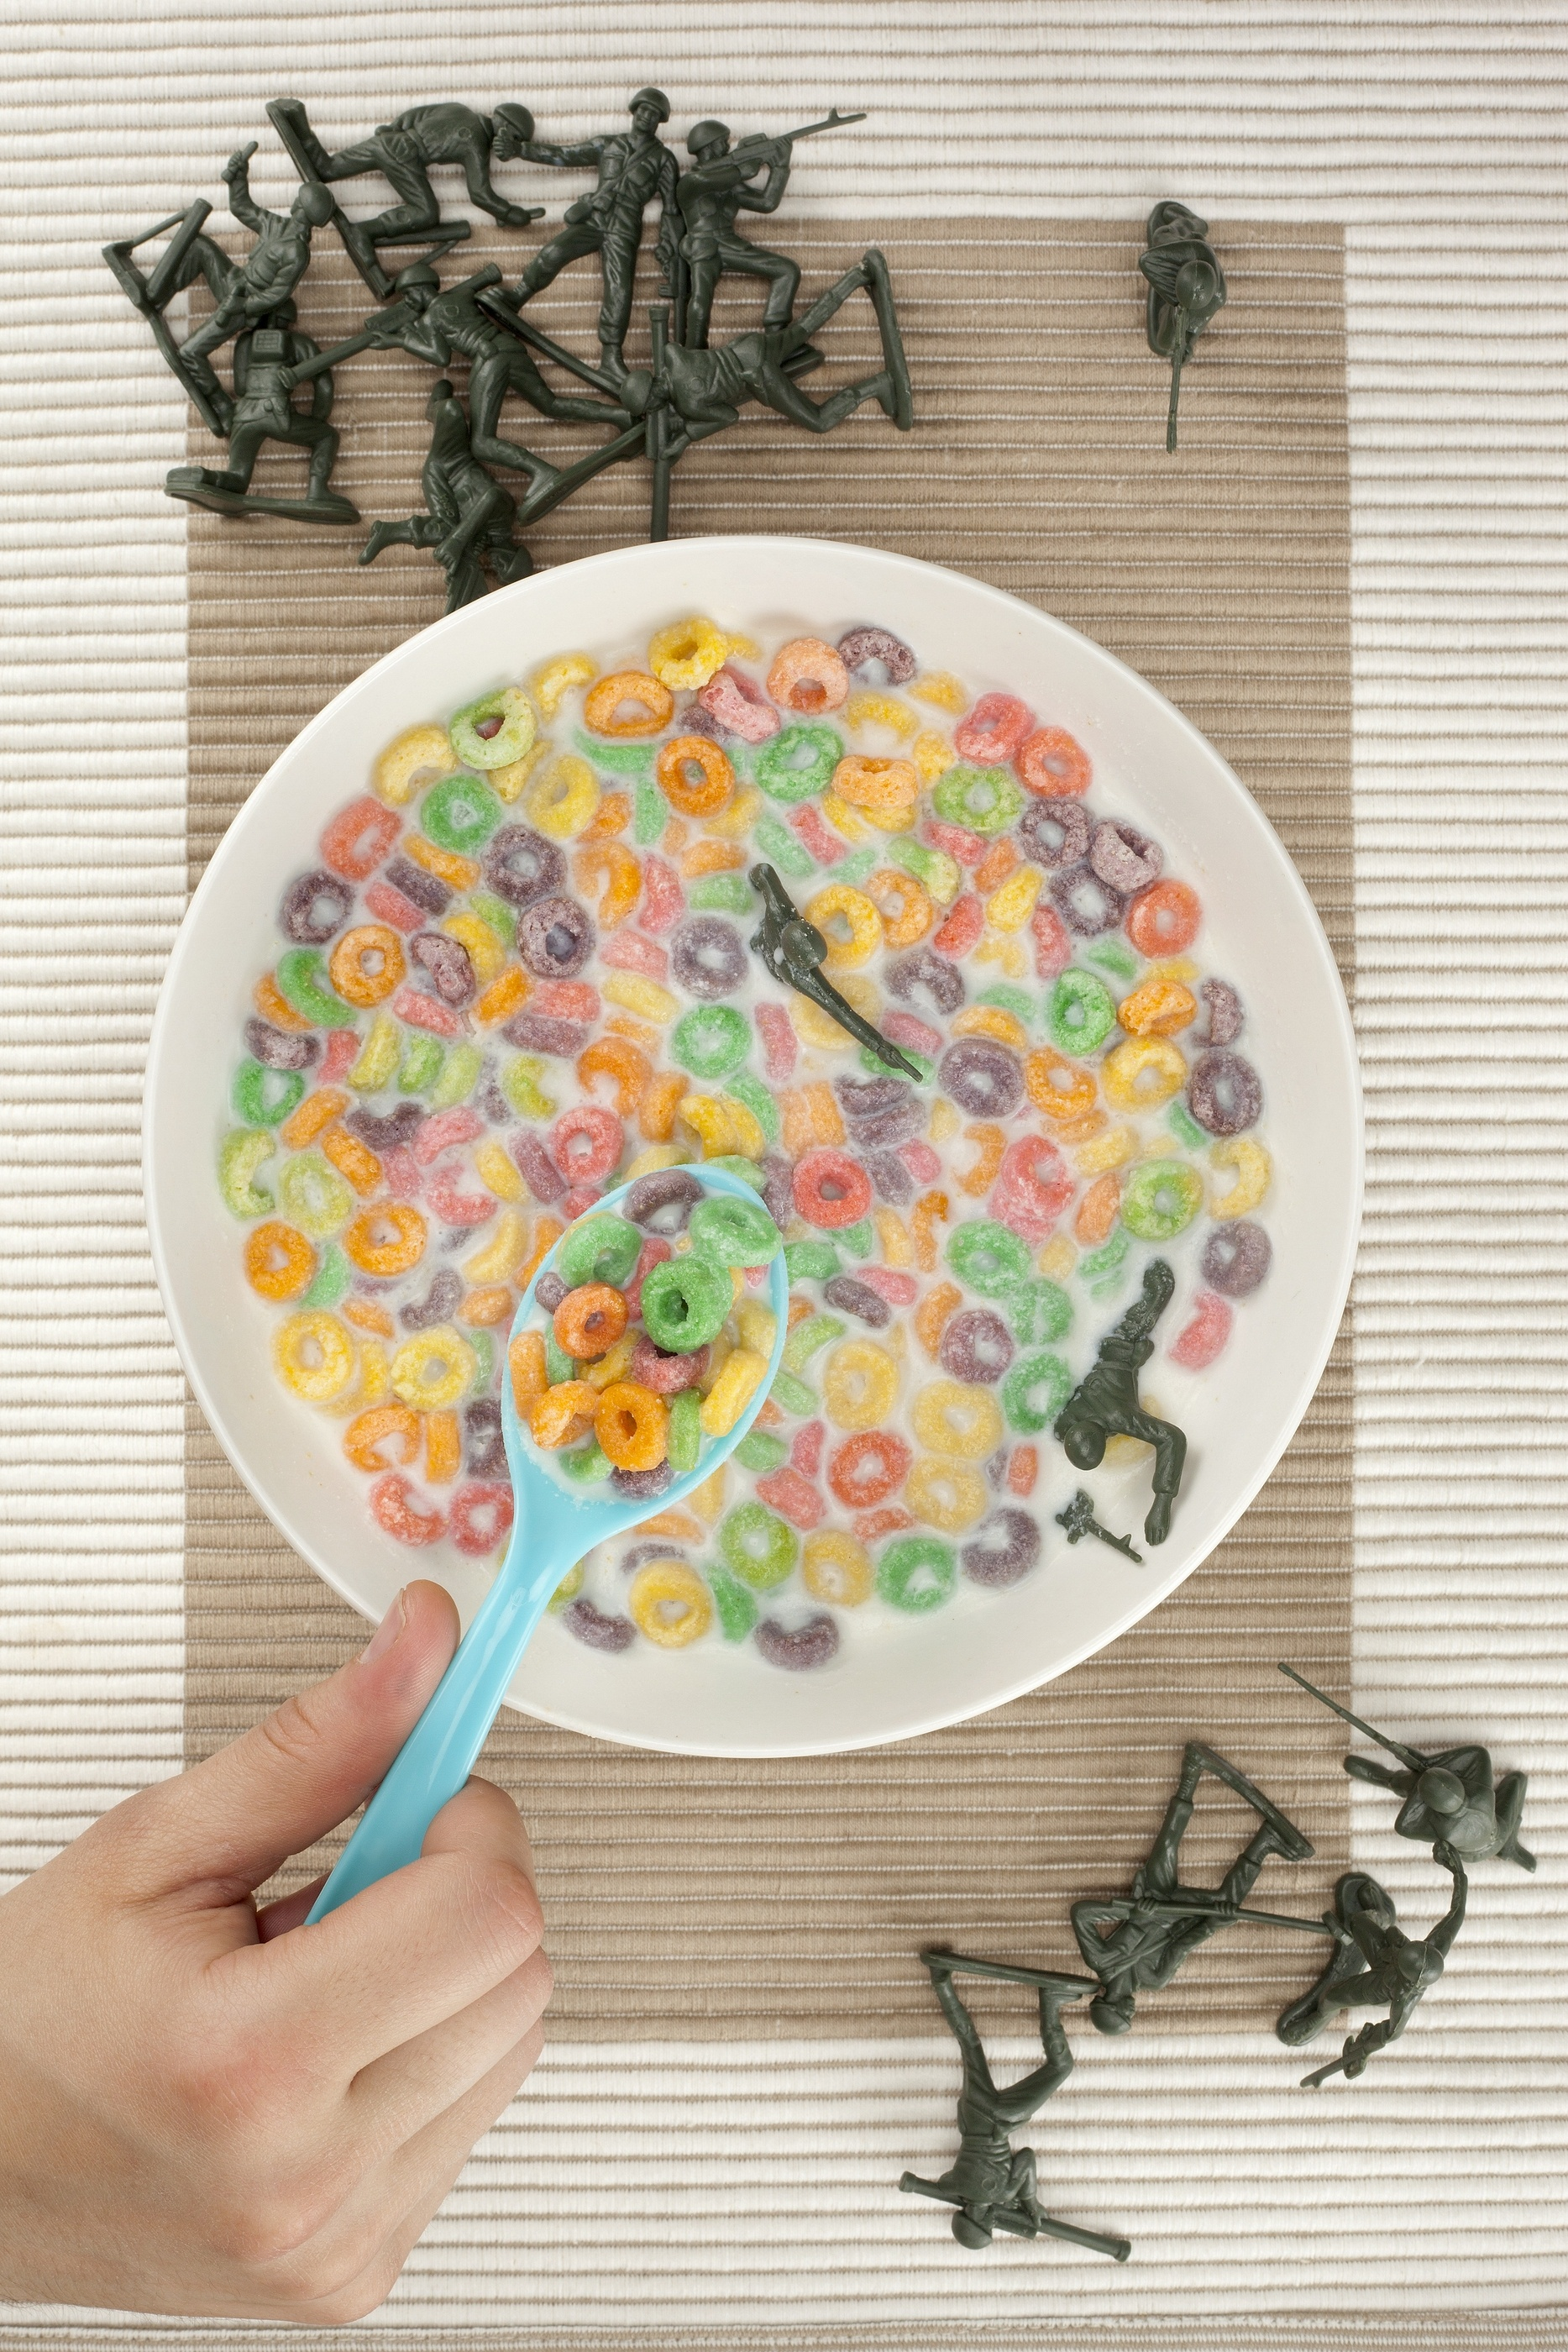 A-Bowl-Of-Cereal-With-Toy-Sold.jpg